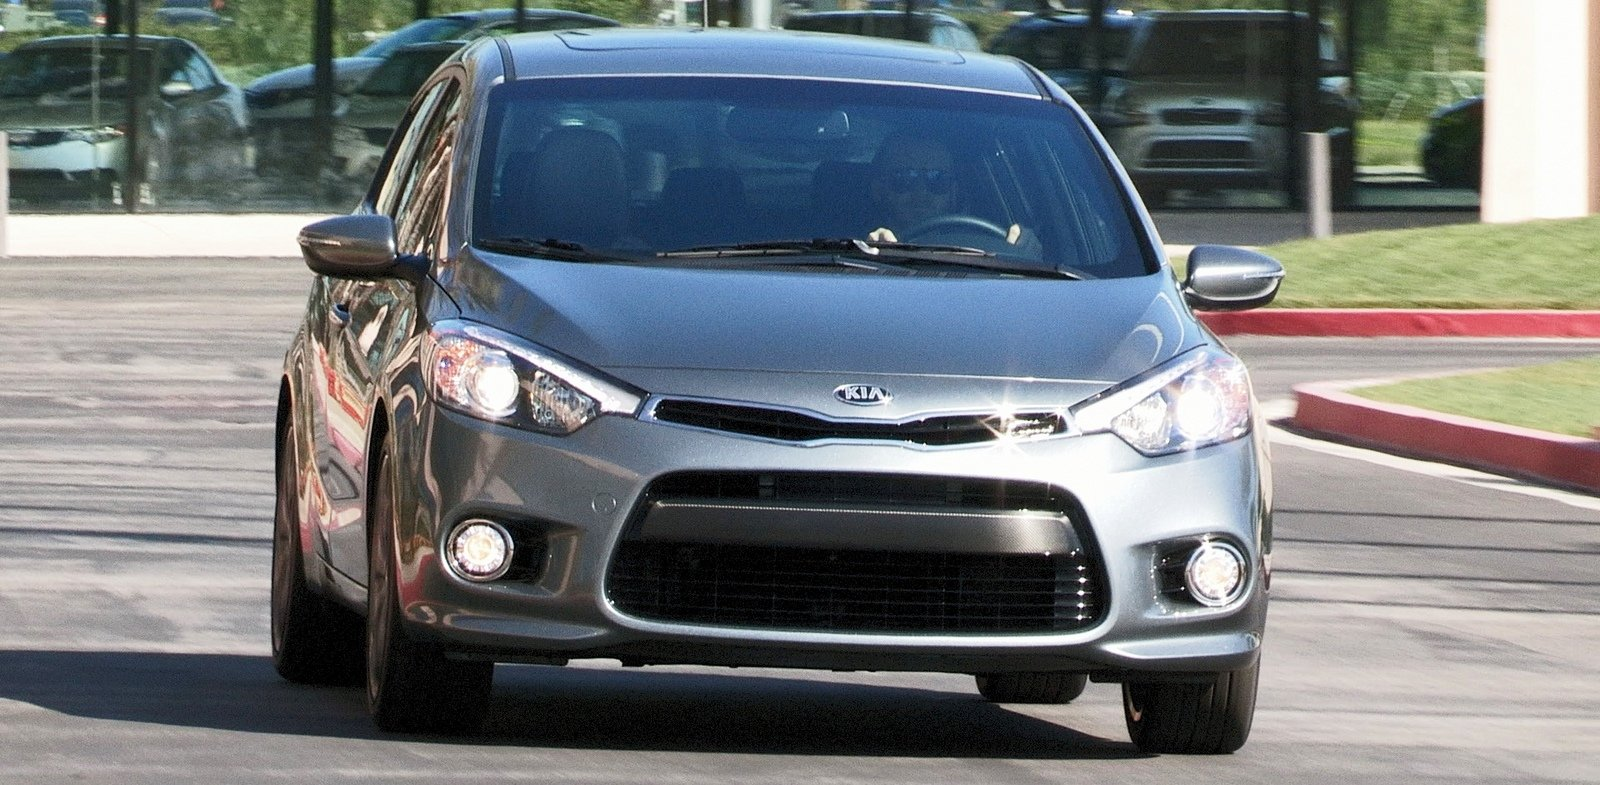 2014 kia forte5 picture 510159 car review top speed. Black Bedroom Furniture Sets. Home Design Ideas